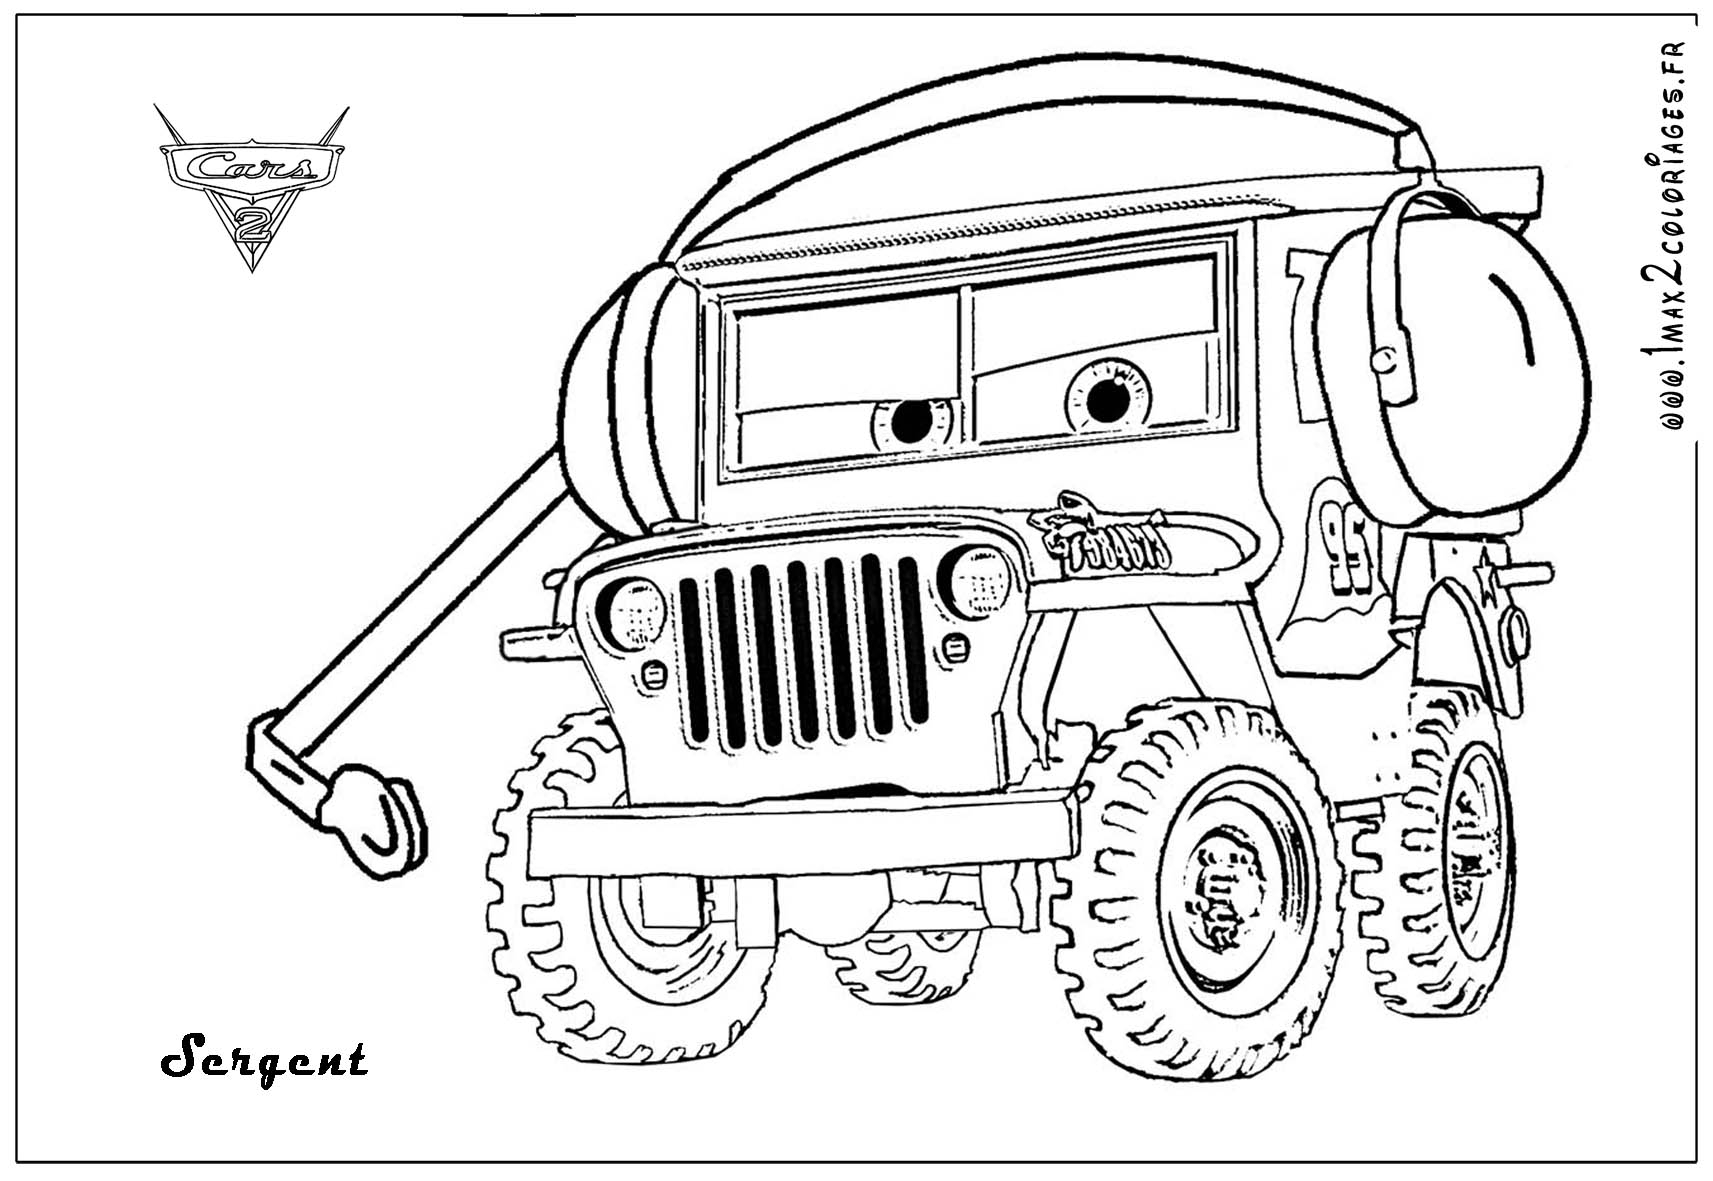 cars movie colouring pages cars the movie coloring pages to print free coloring sheets pages movie cars colouring 1 1